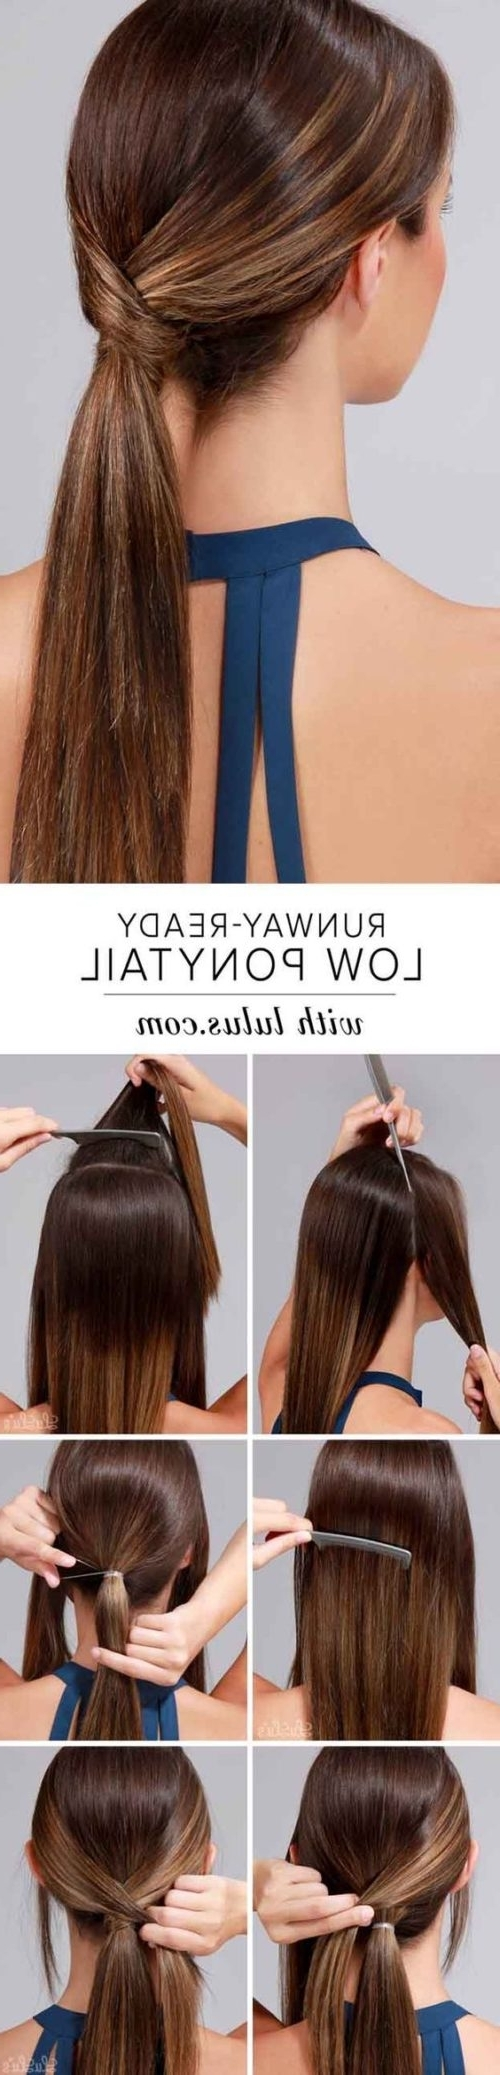 16 Best Ponytail Tutorials That Will Make You A Pony Hairstyling Expert! With Regard To Most Up To Date Knotted Ponytail Hairstyles (View 1 of 20)